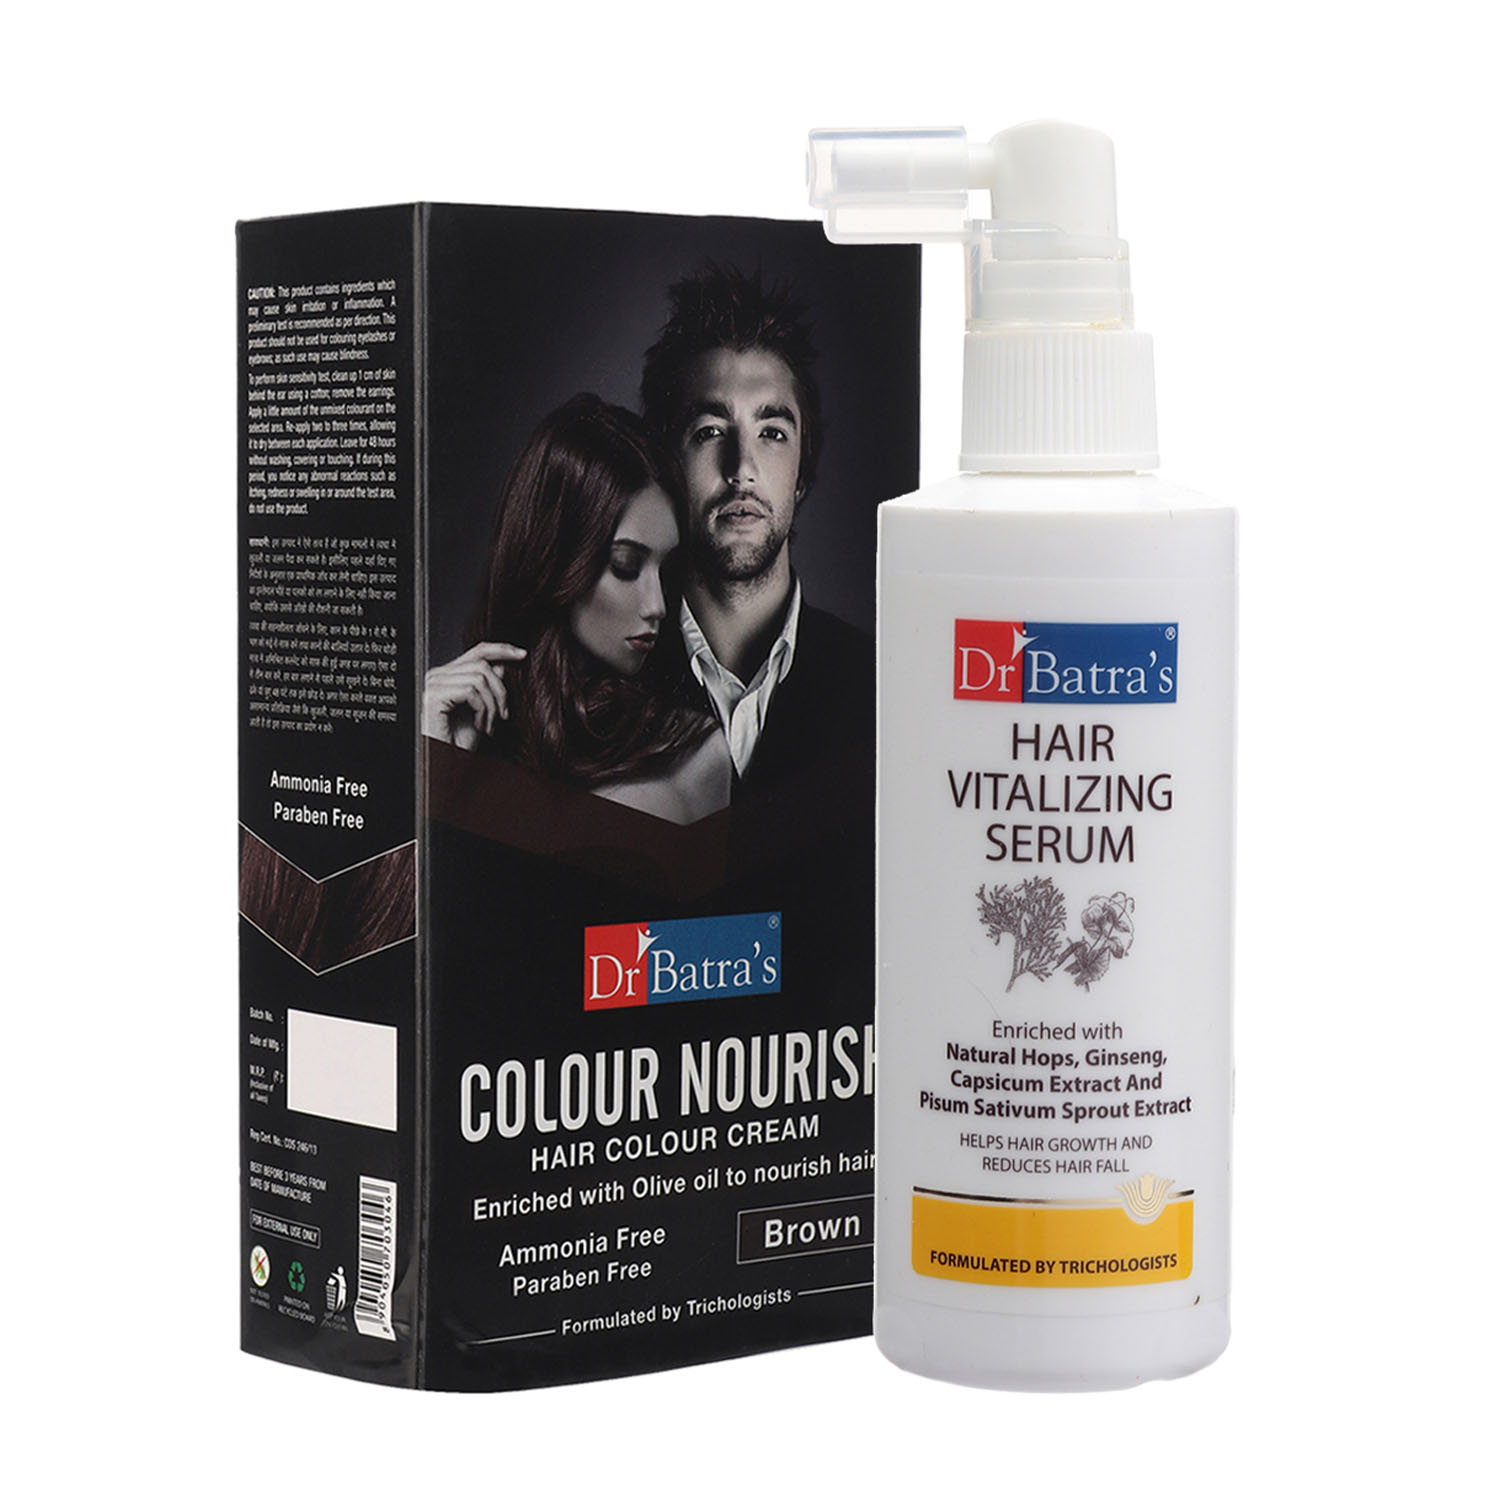 Dr Batra's | Dr Batra's Hair Vitalizing Serum 125ml and Dr Batra's Colour Nourish Hair Colour Cream - Brown (Pack of 2 for Men and Women)